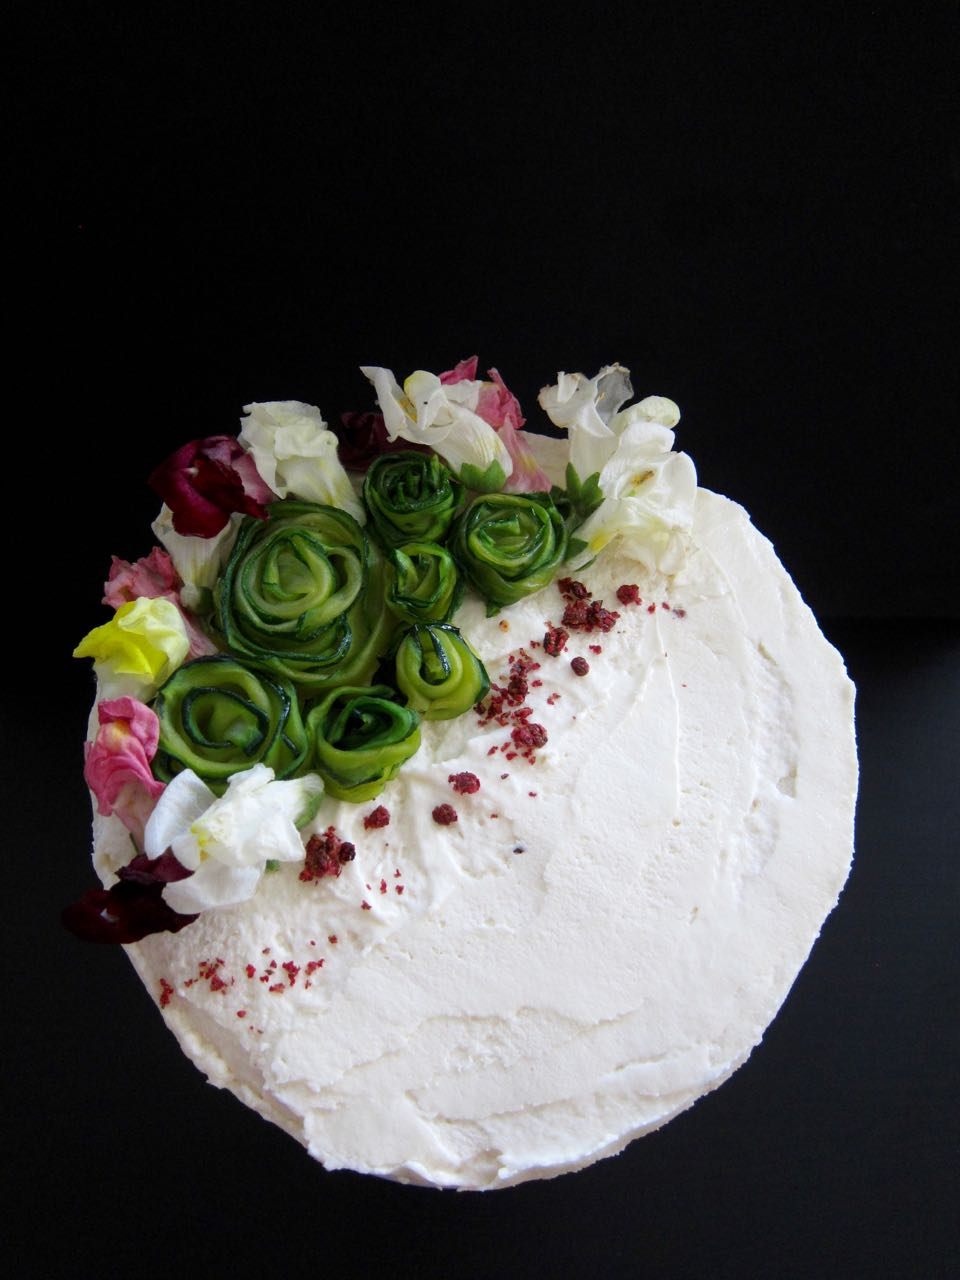 chocolate cake topped with zucchini roses